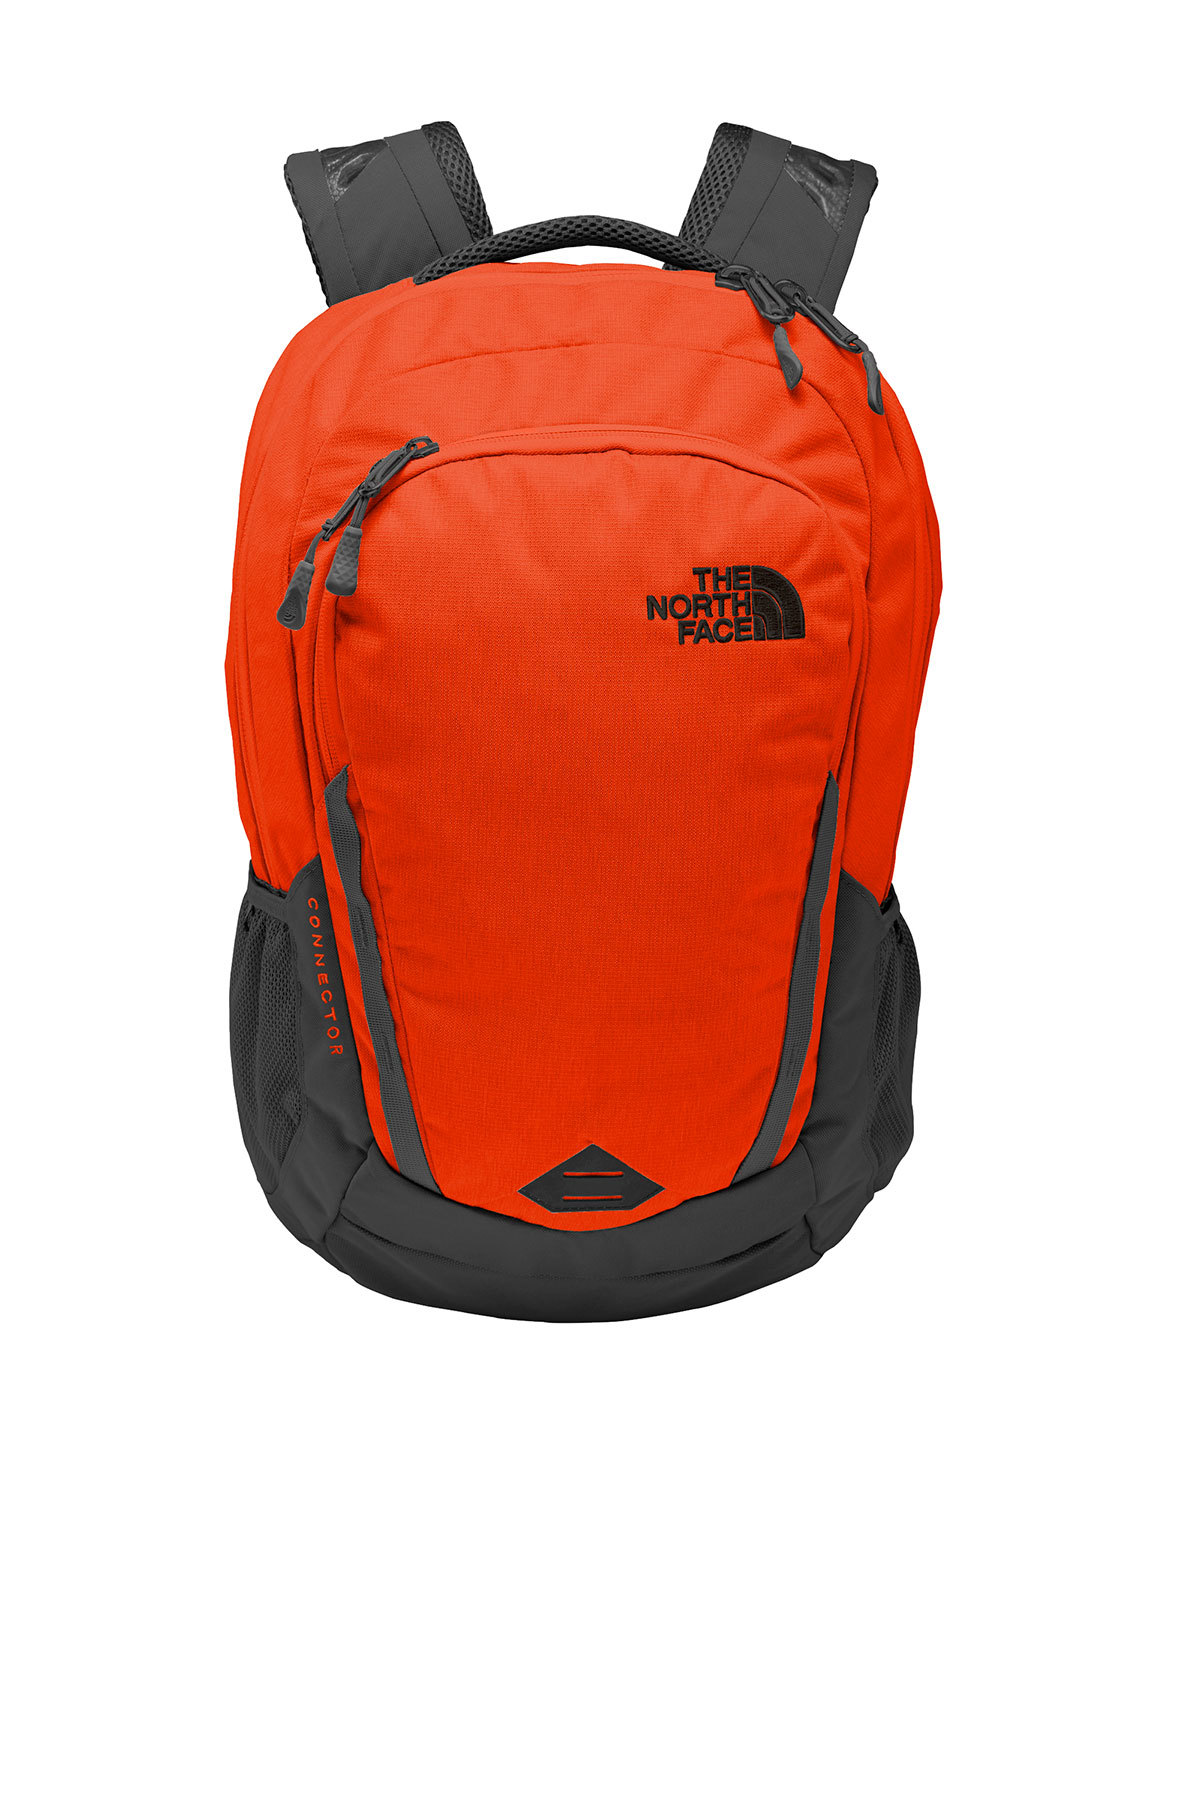 39082ba8f9 The North Face NF0A3KX8 - Connector Backpack $46.00 - Bags